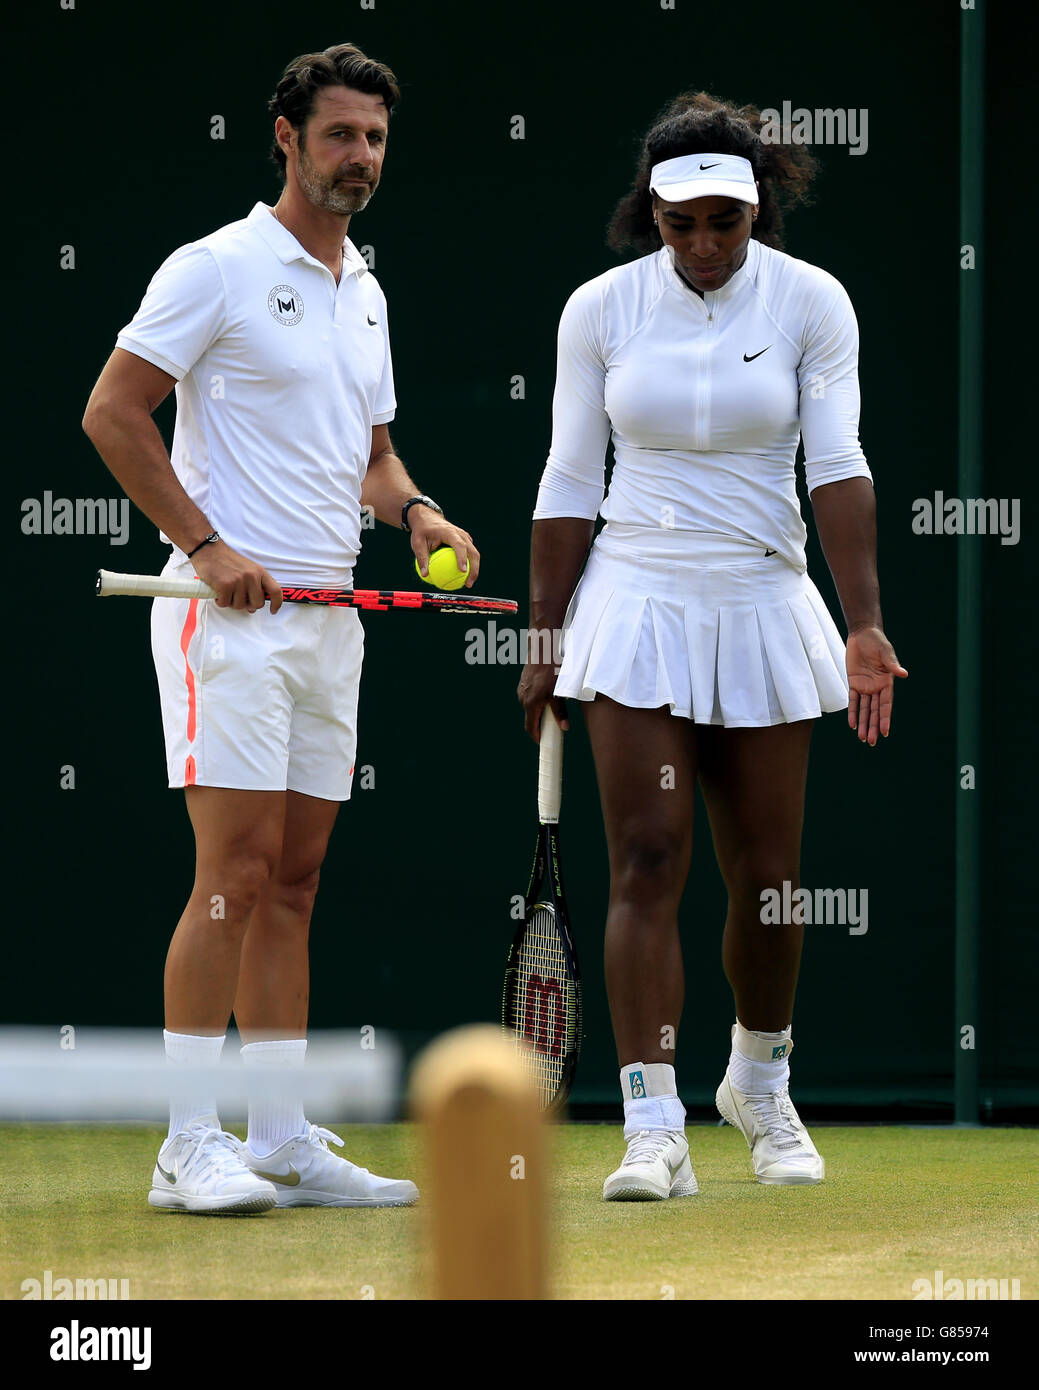 Serena Williams And Patrick Mouratoglou Stock Photos and Images